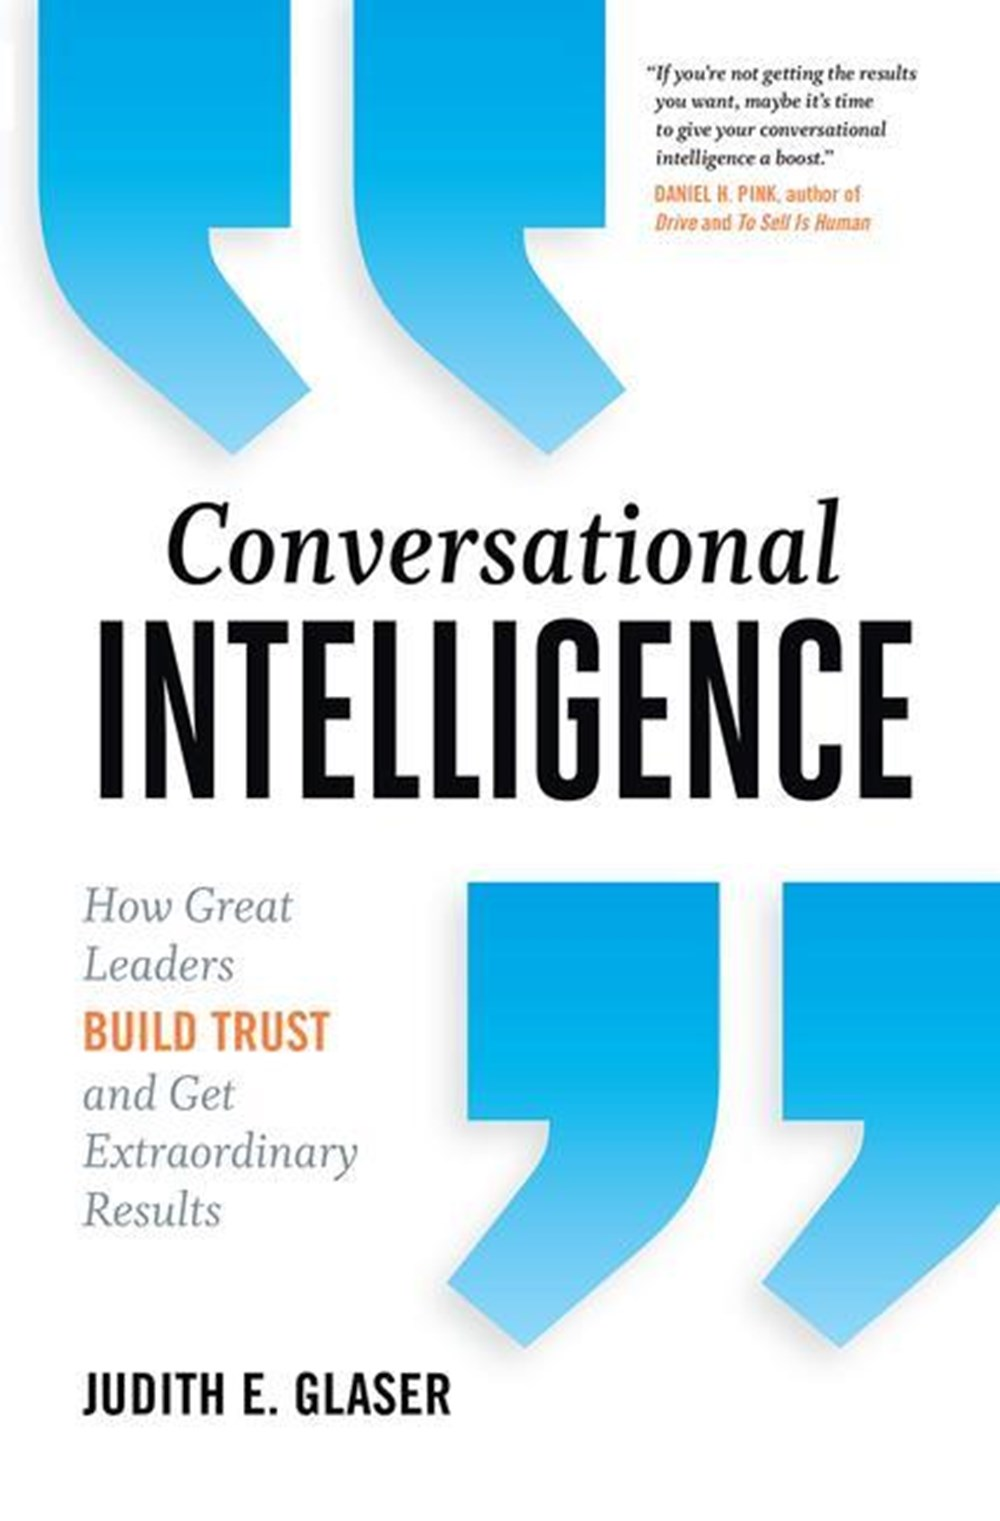 Conversational Intelligence How Great Leaders Build Trust and Get Extraordinary Results